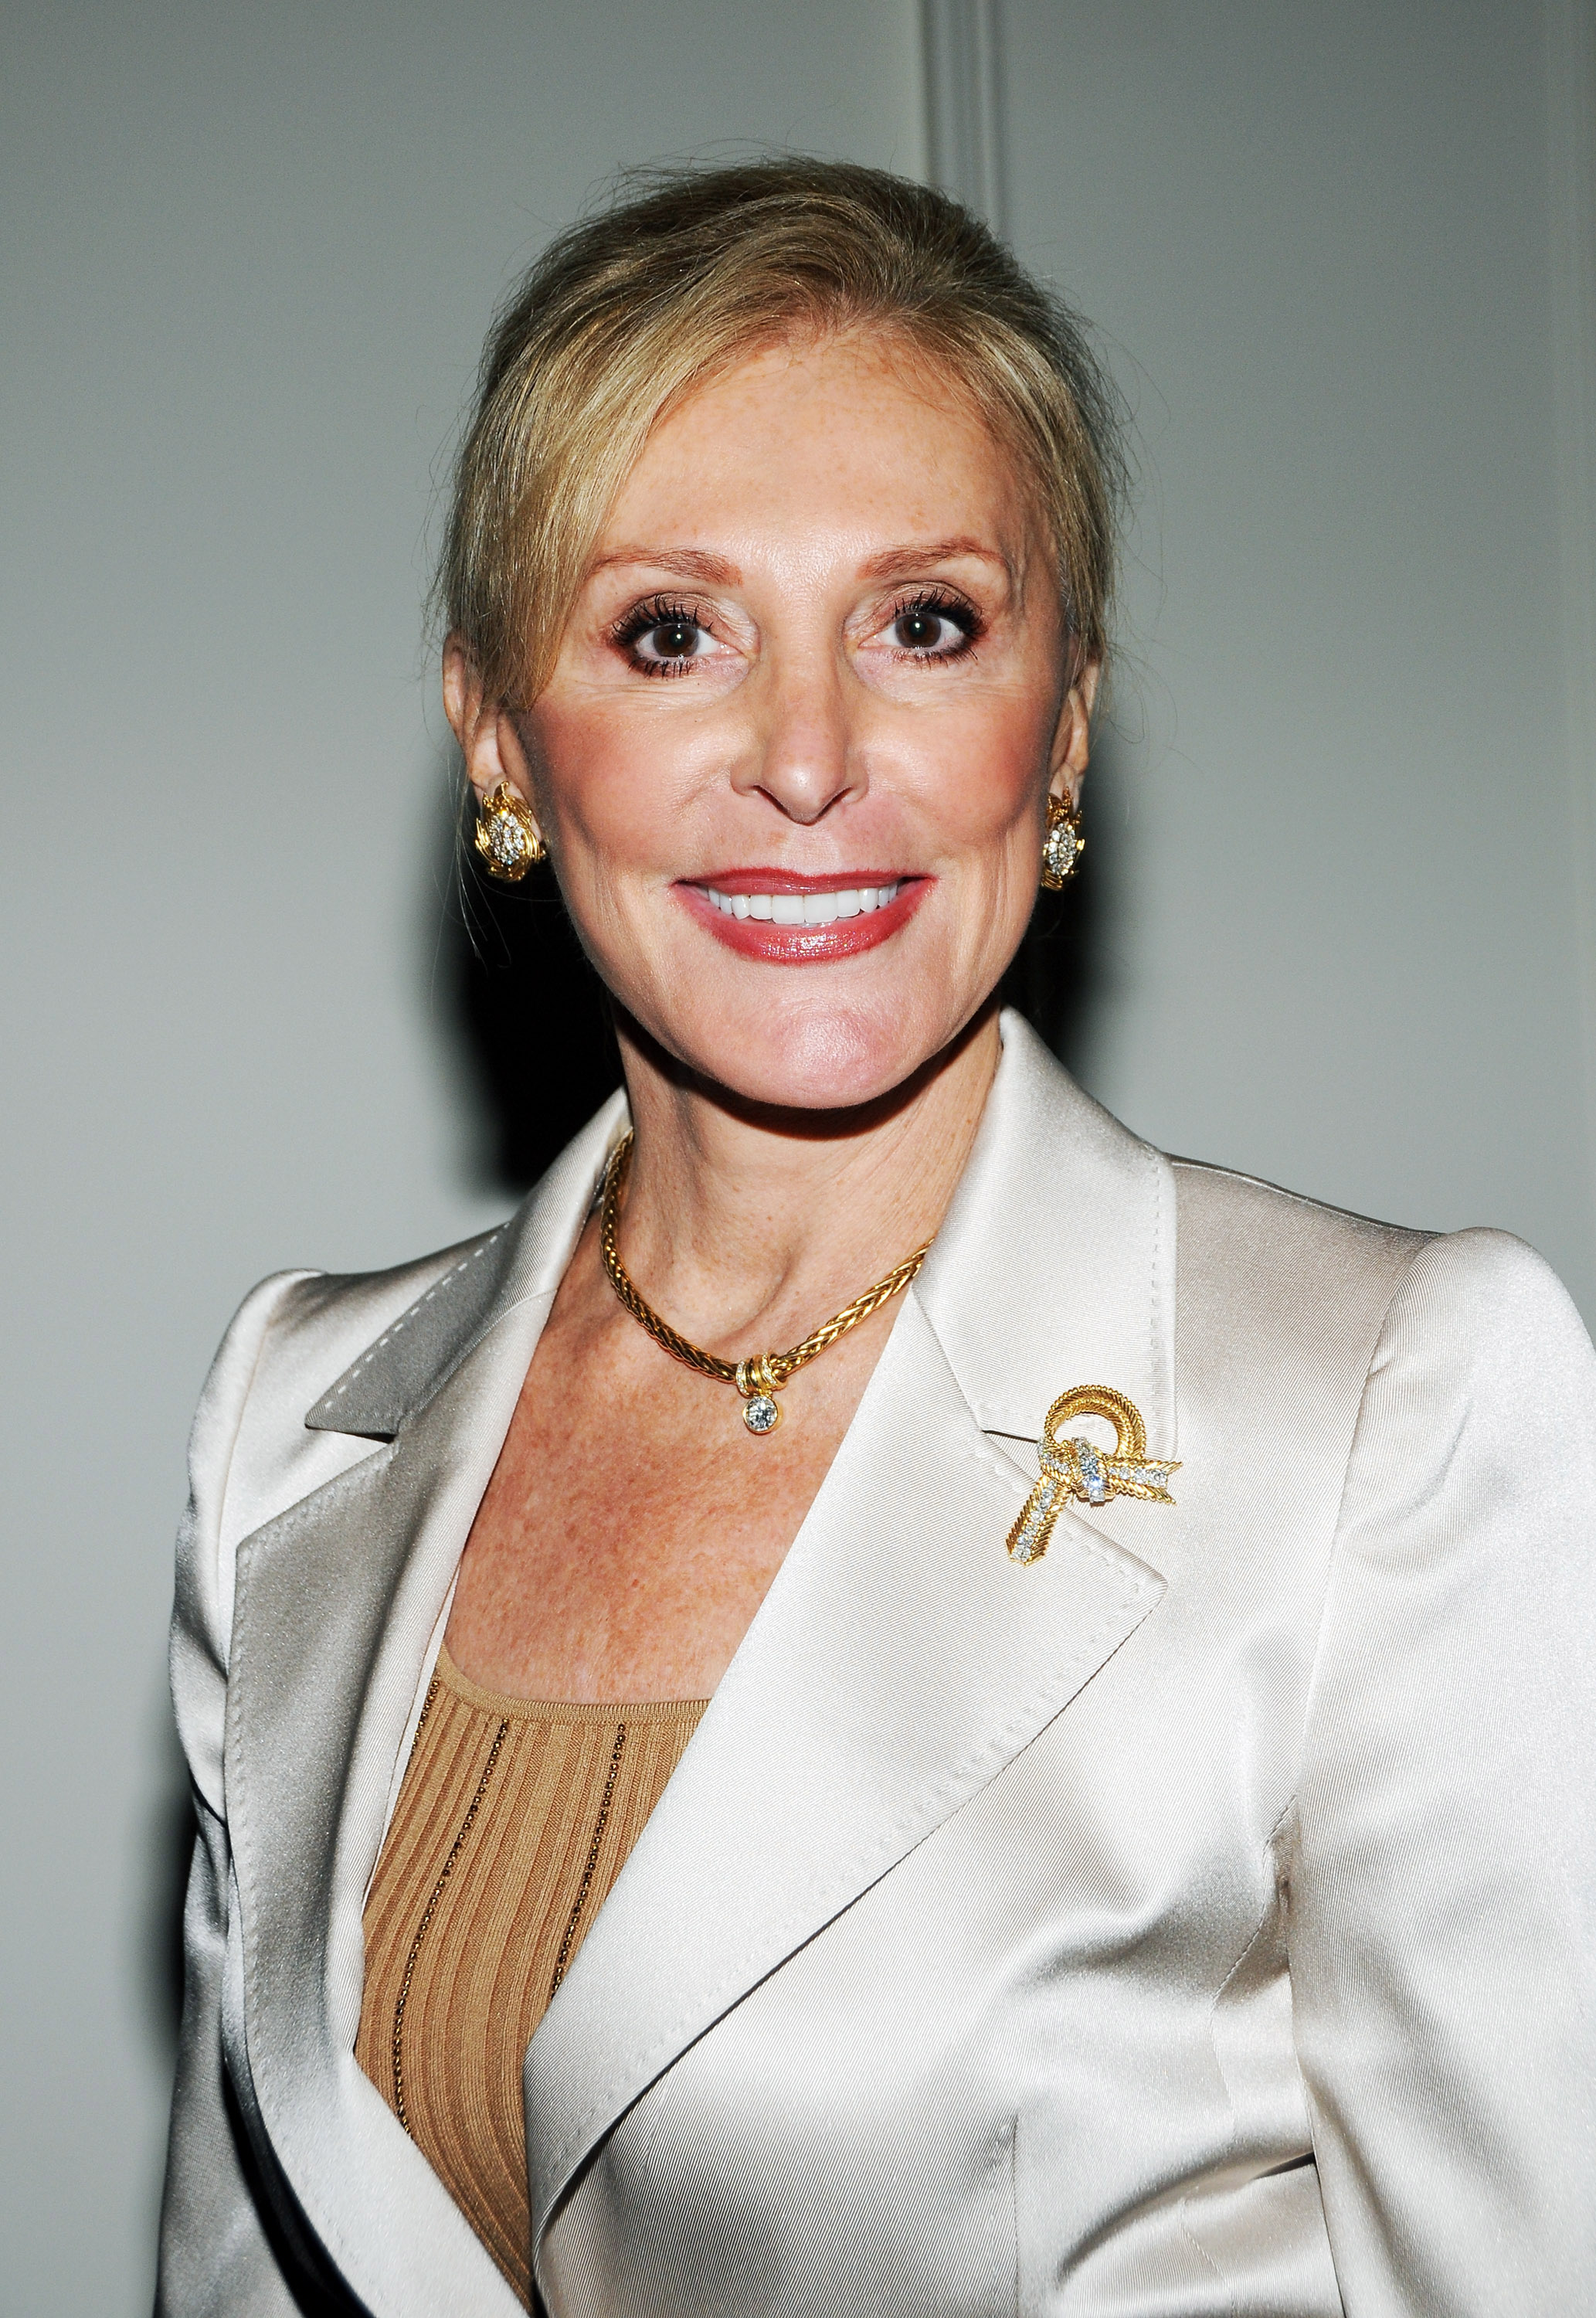 Janice Reals Ellig attends the 2011 Elly Awards luncheon at The Plaza Hotel in New York City on June 15, 2011.